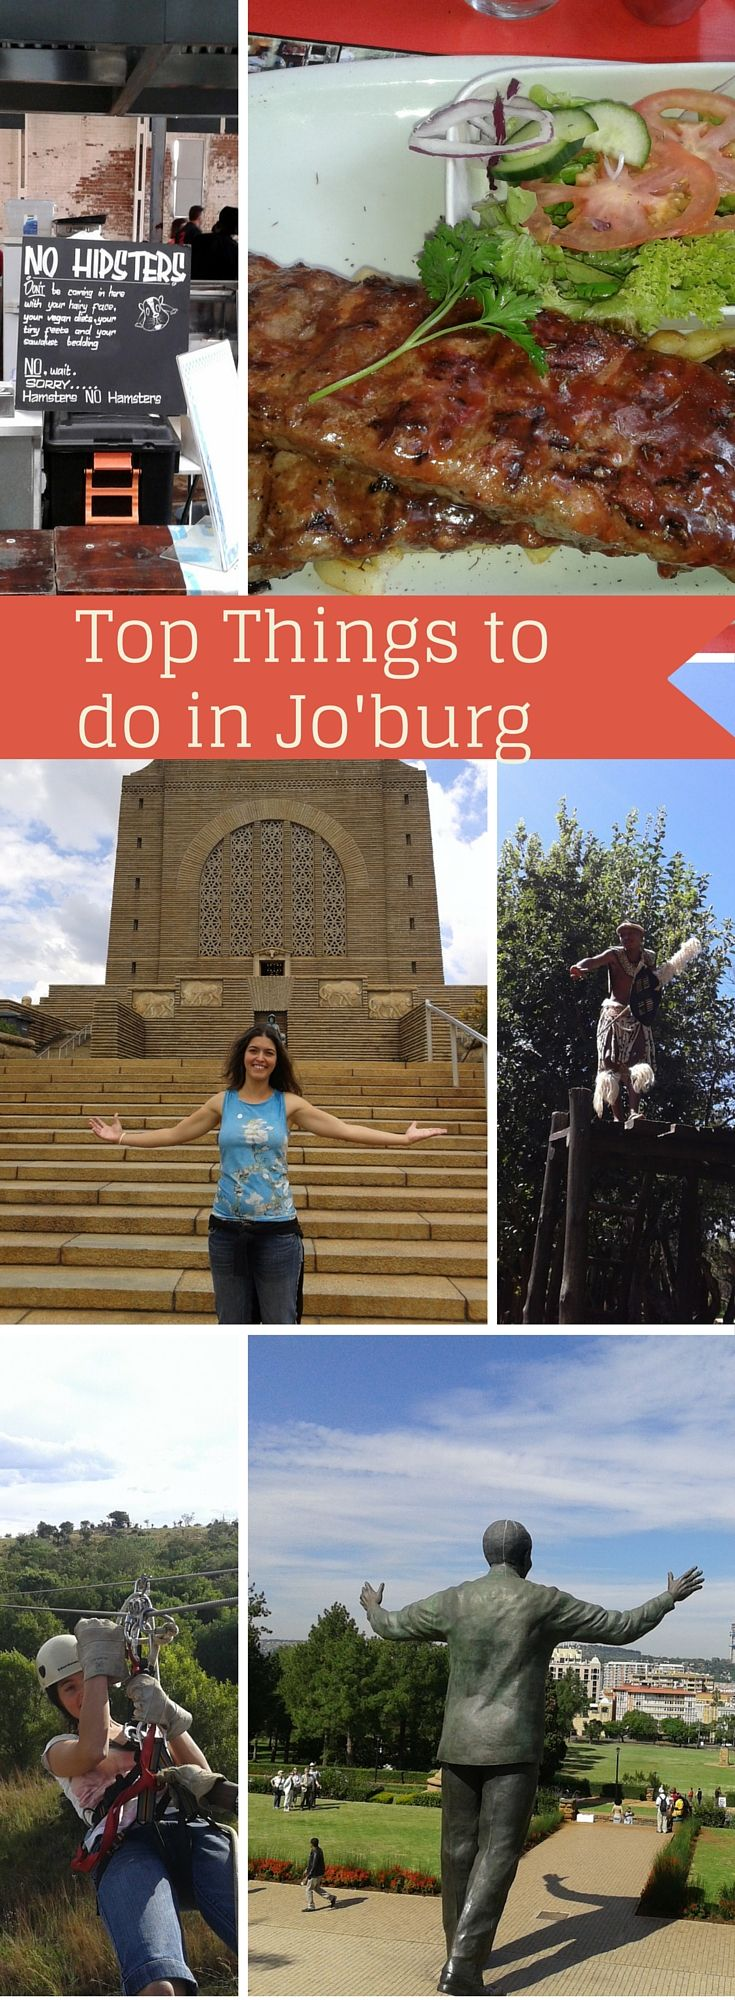 Have a blast in a few days in #Joburg and #Pretoria! Find what you need to know about the Sterkfontein caves, the Lesedi village, the Voortrekker and more! Johannesburg, South Africa